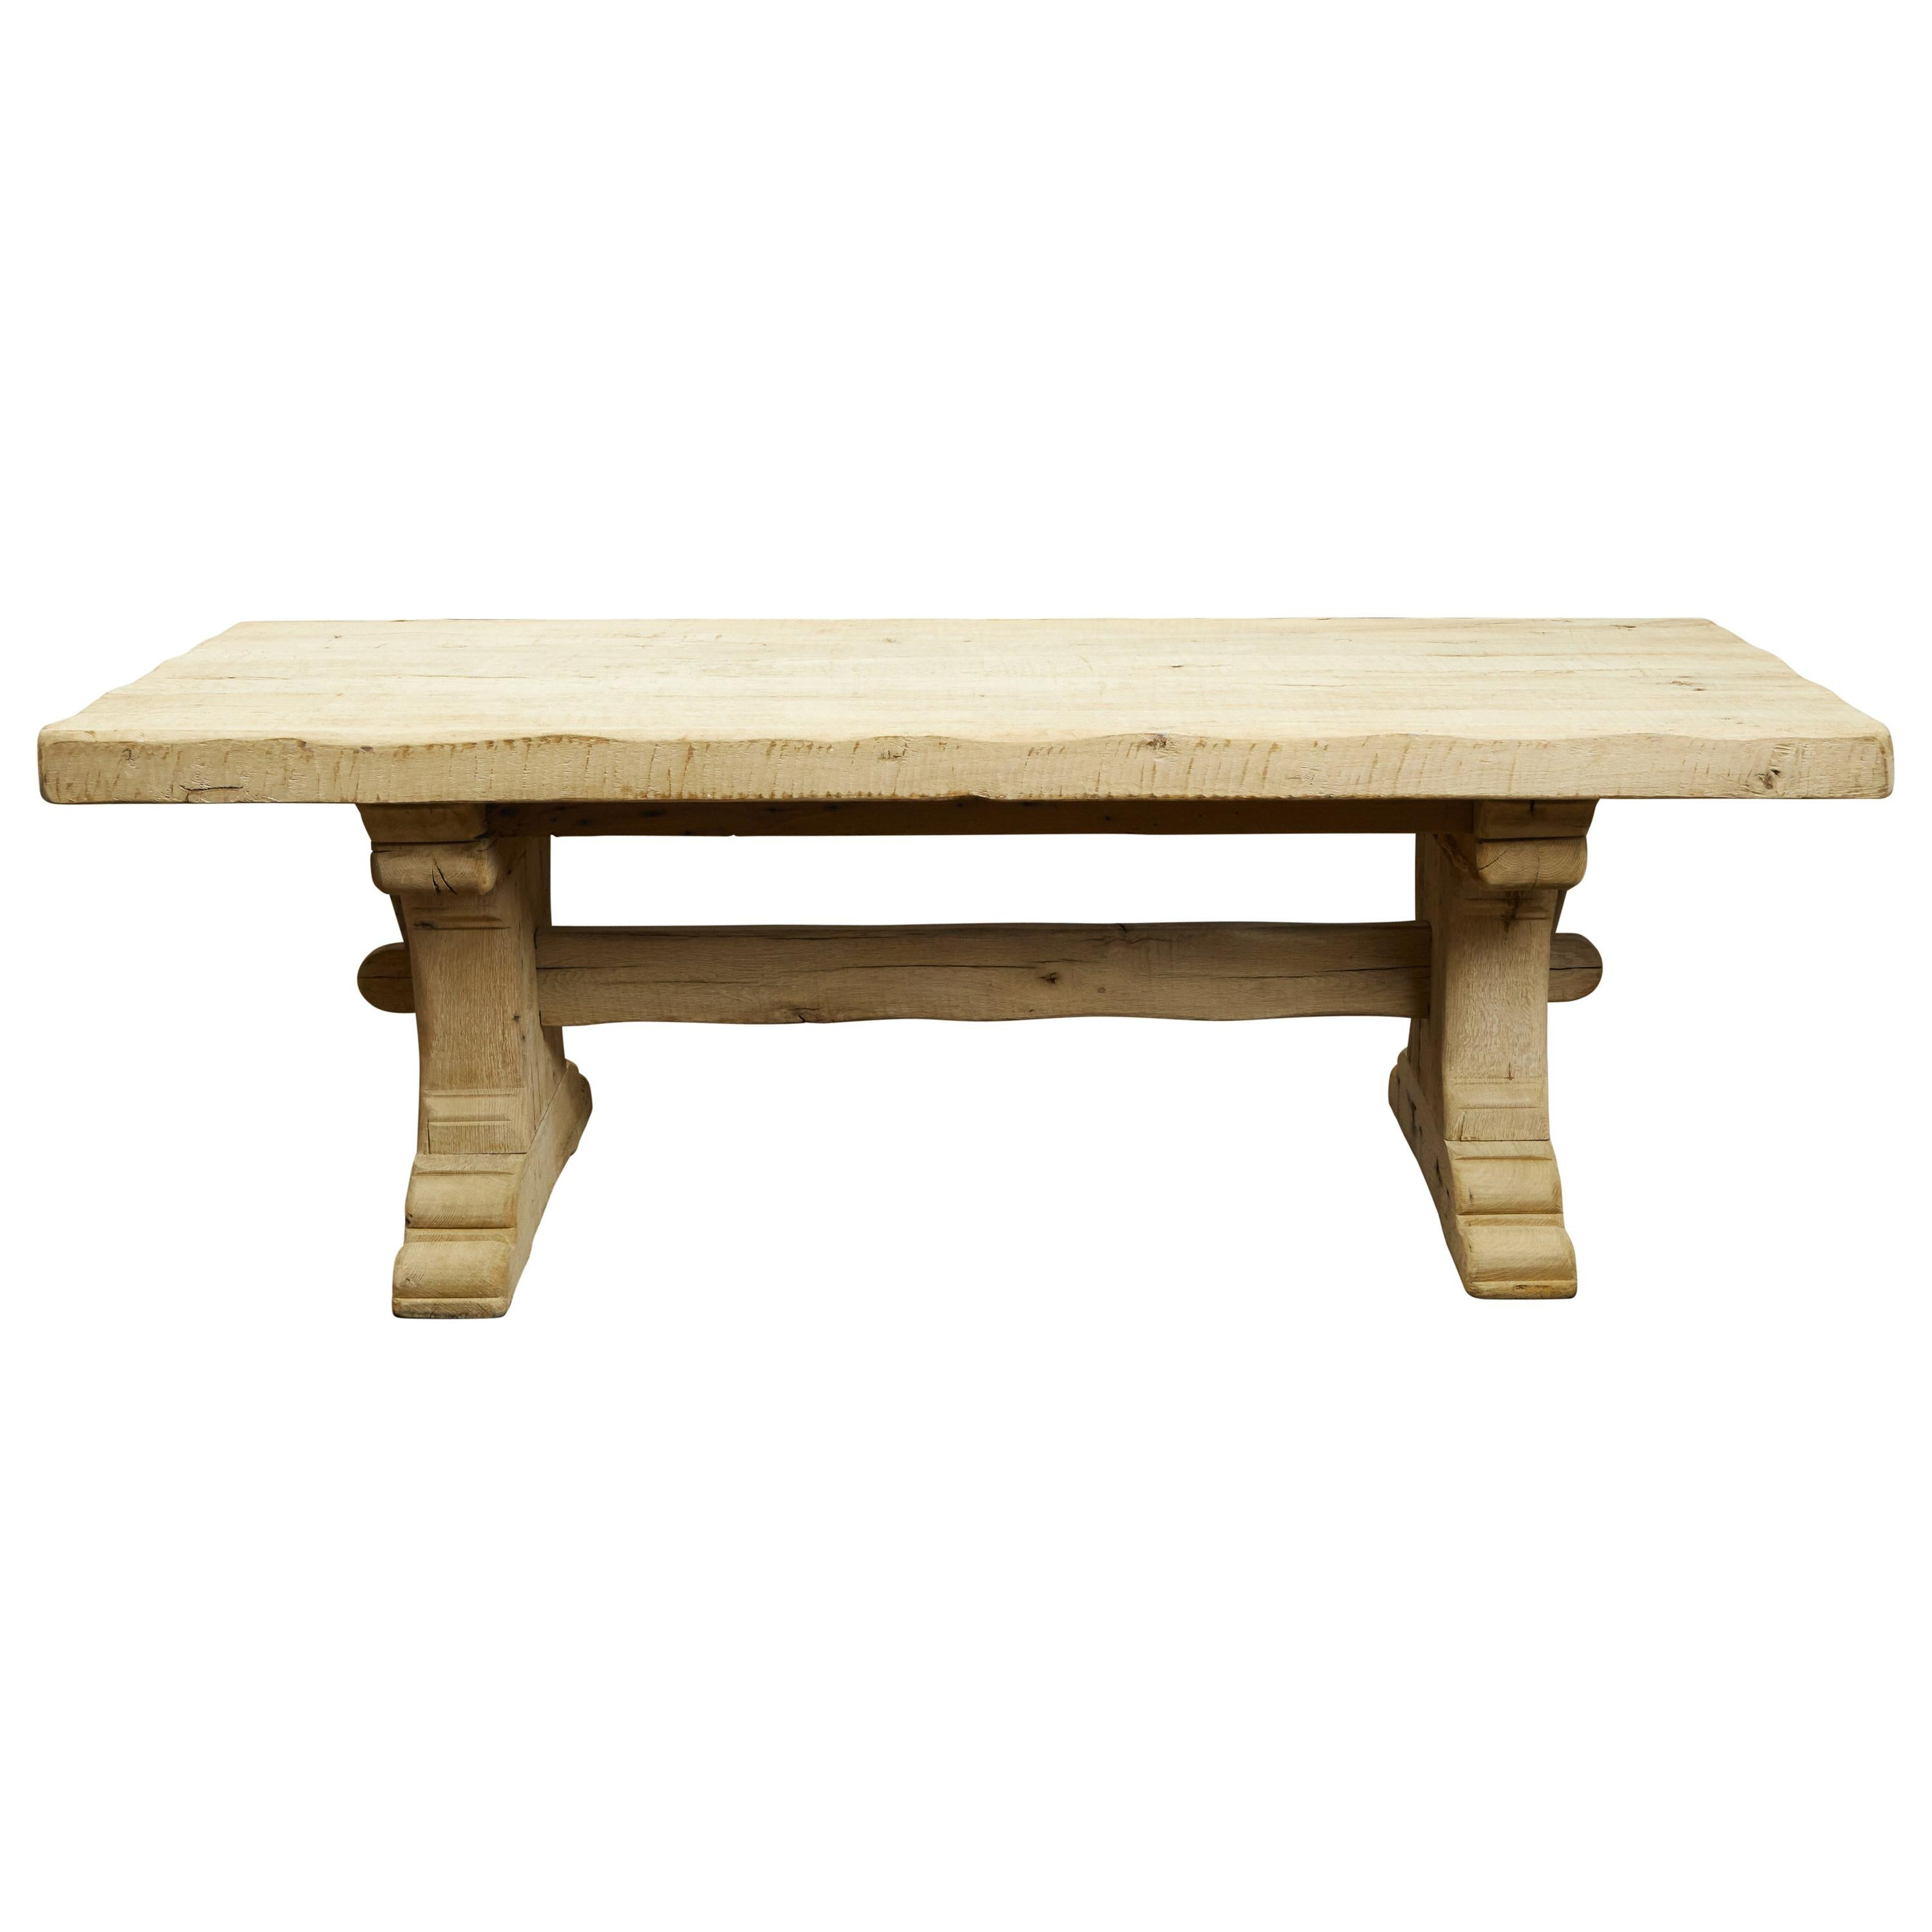 Rustic French 1880s Oak Farm Table with Trestle Base and Natural Patina